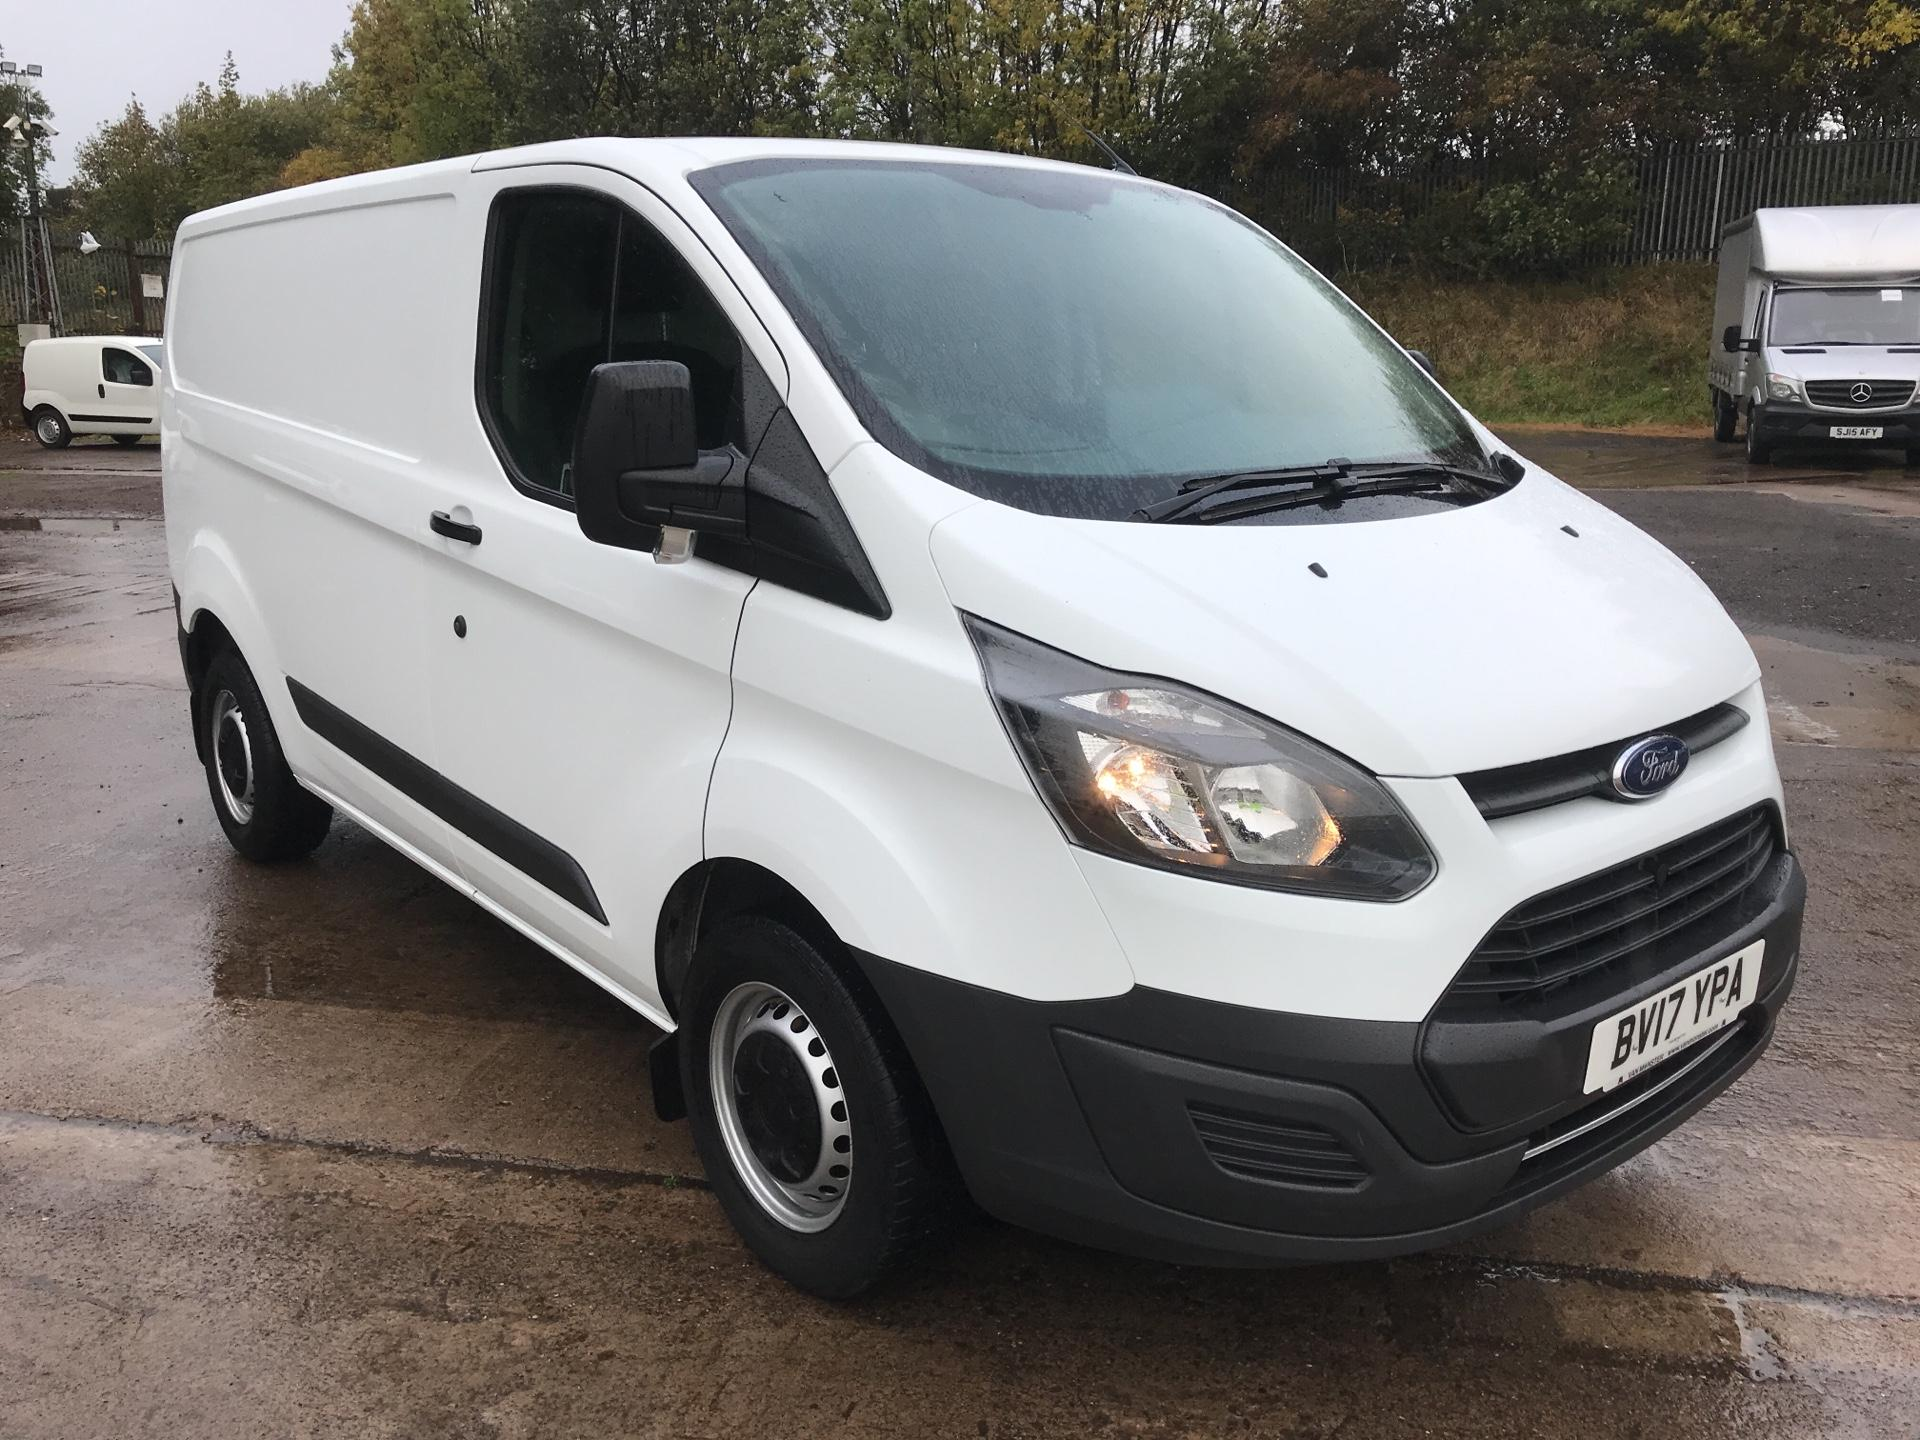 2017 Ford Transit Custom 290 L1 DIESEL FWD 2.0 TDCI 105PS LOW ROOF VAN EURO 6 (BV17YPA)